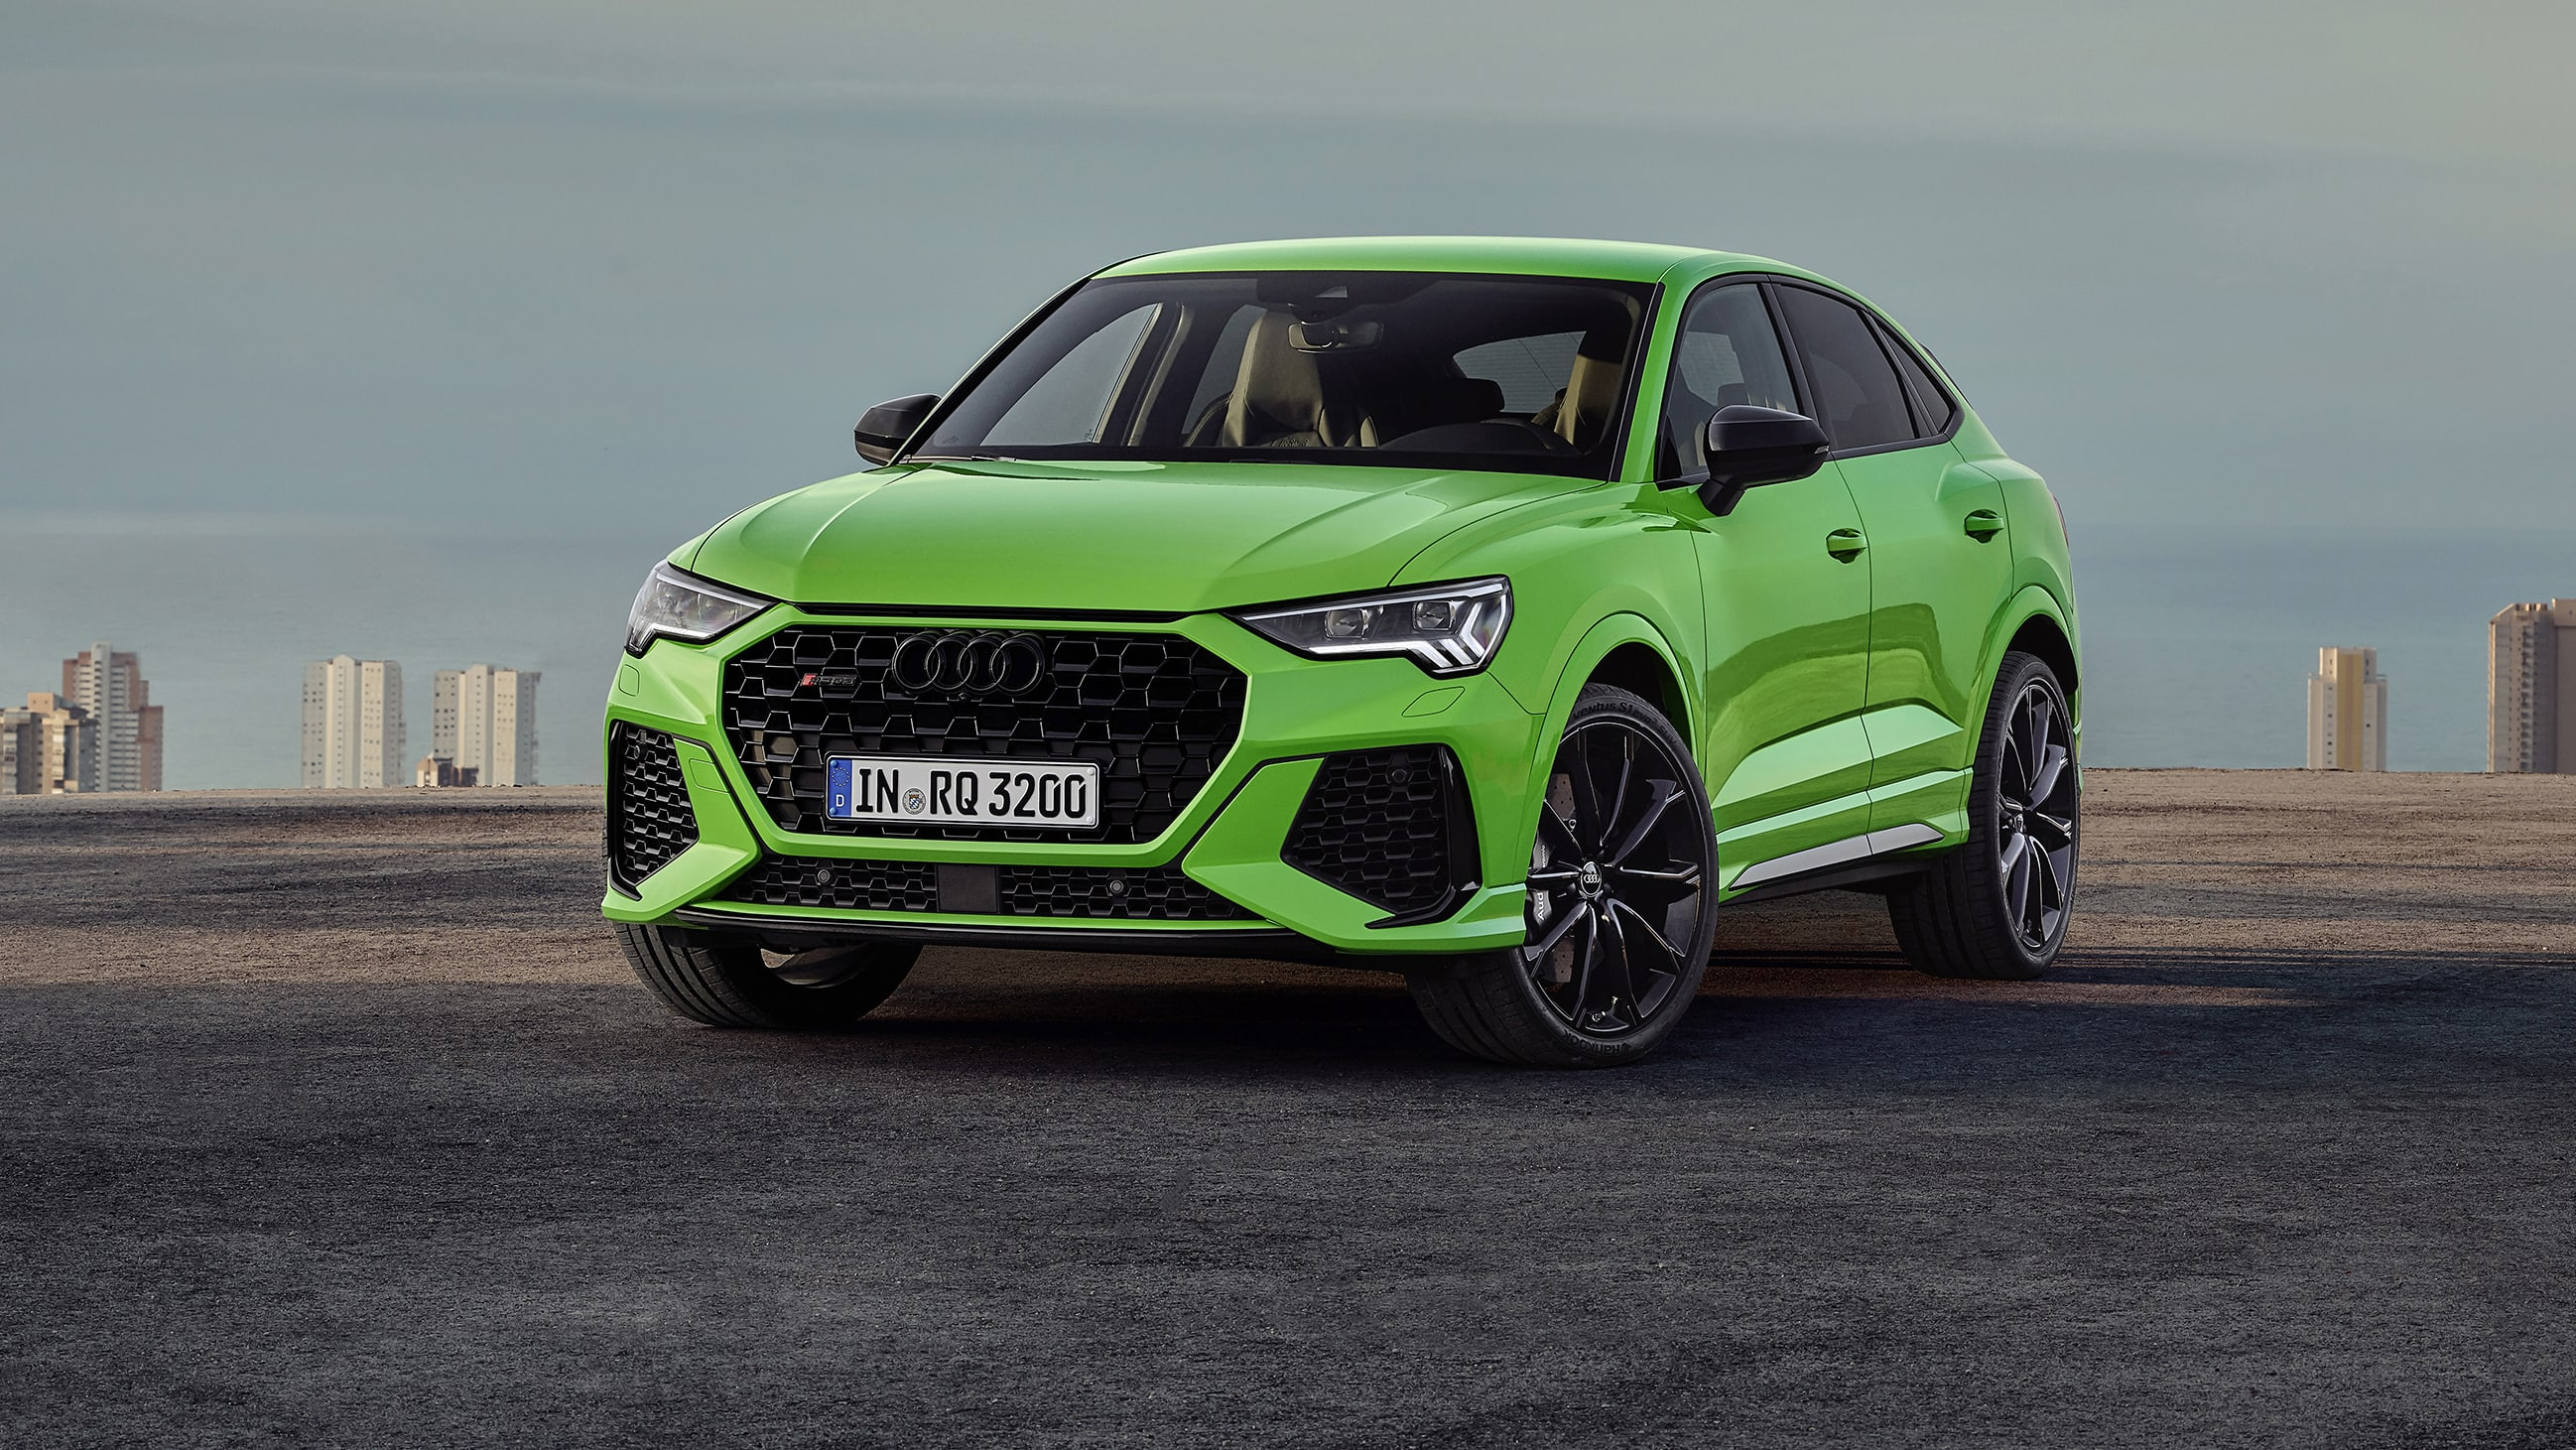 2020 Audi Rsq3 Pricing And Specs Hot Suv Debuts New Reservation System Caradvice